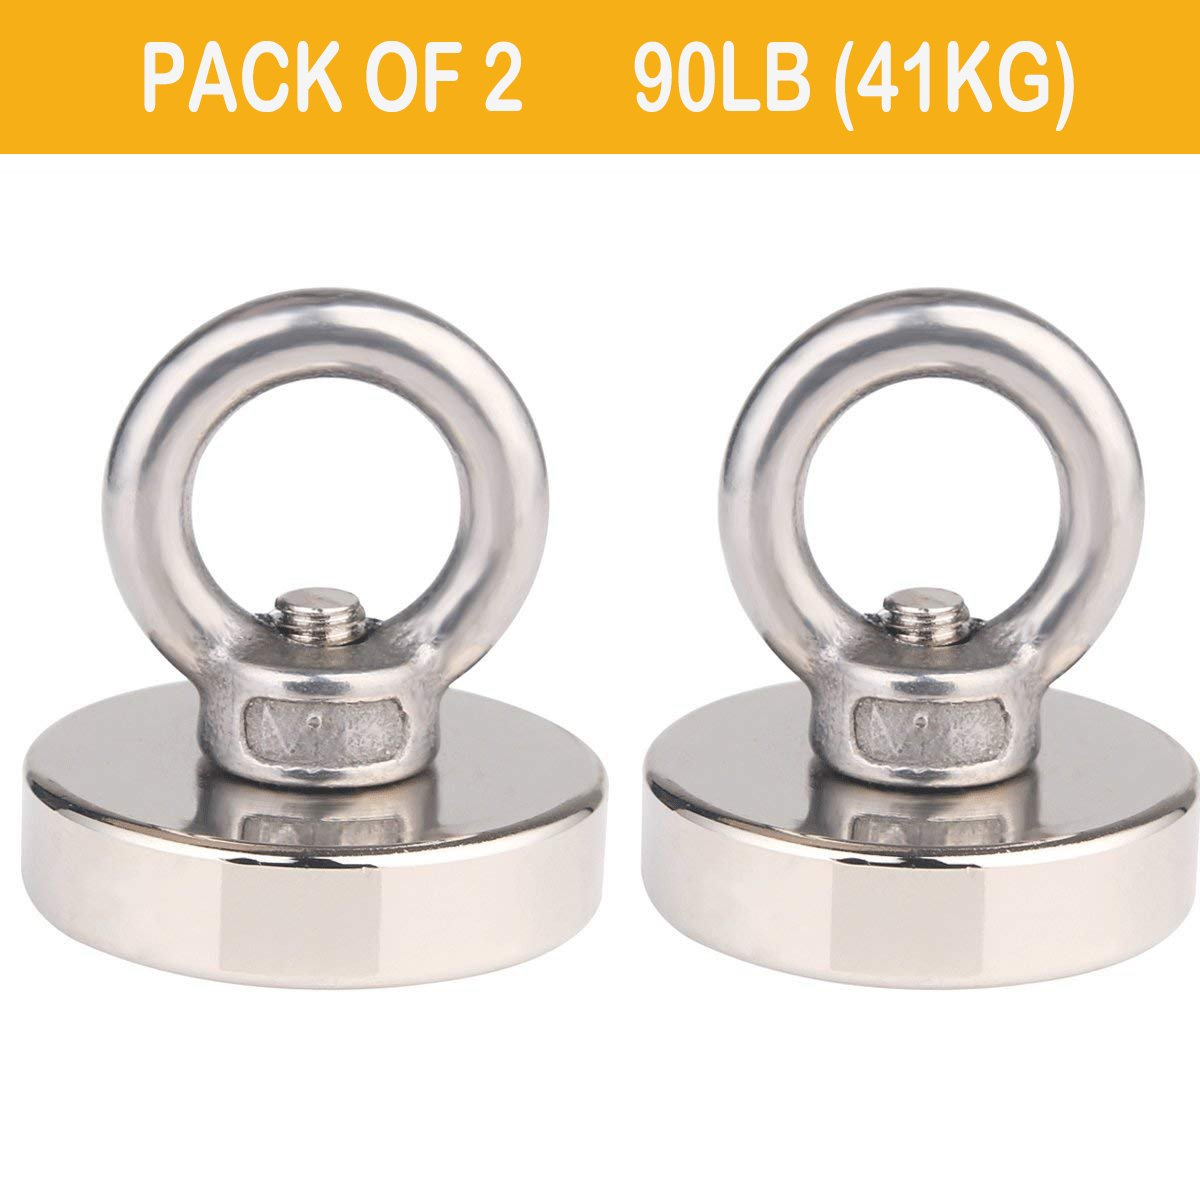 90.4 LBS Pulling Force Powerful Round Neodymium Fishing Magnet Diameter 1.4 INCH(36mm) for Magnet Fishing Magnet Metal Detector Recovery Treasure Finder (Pack of 2)